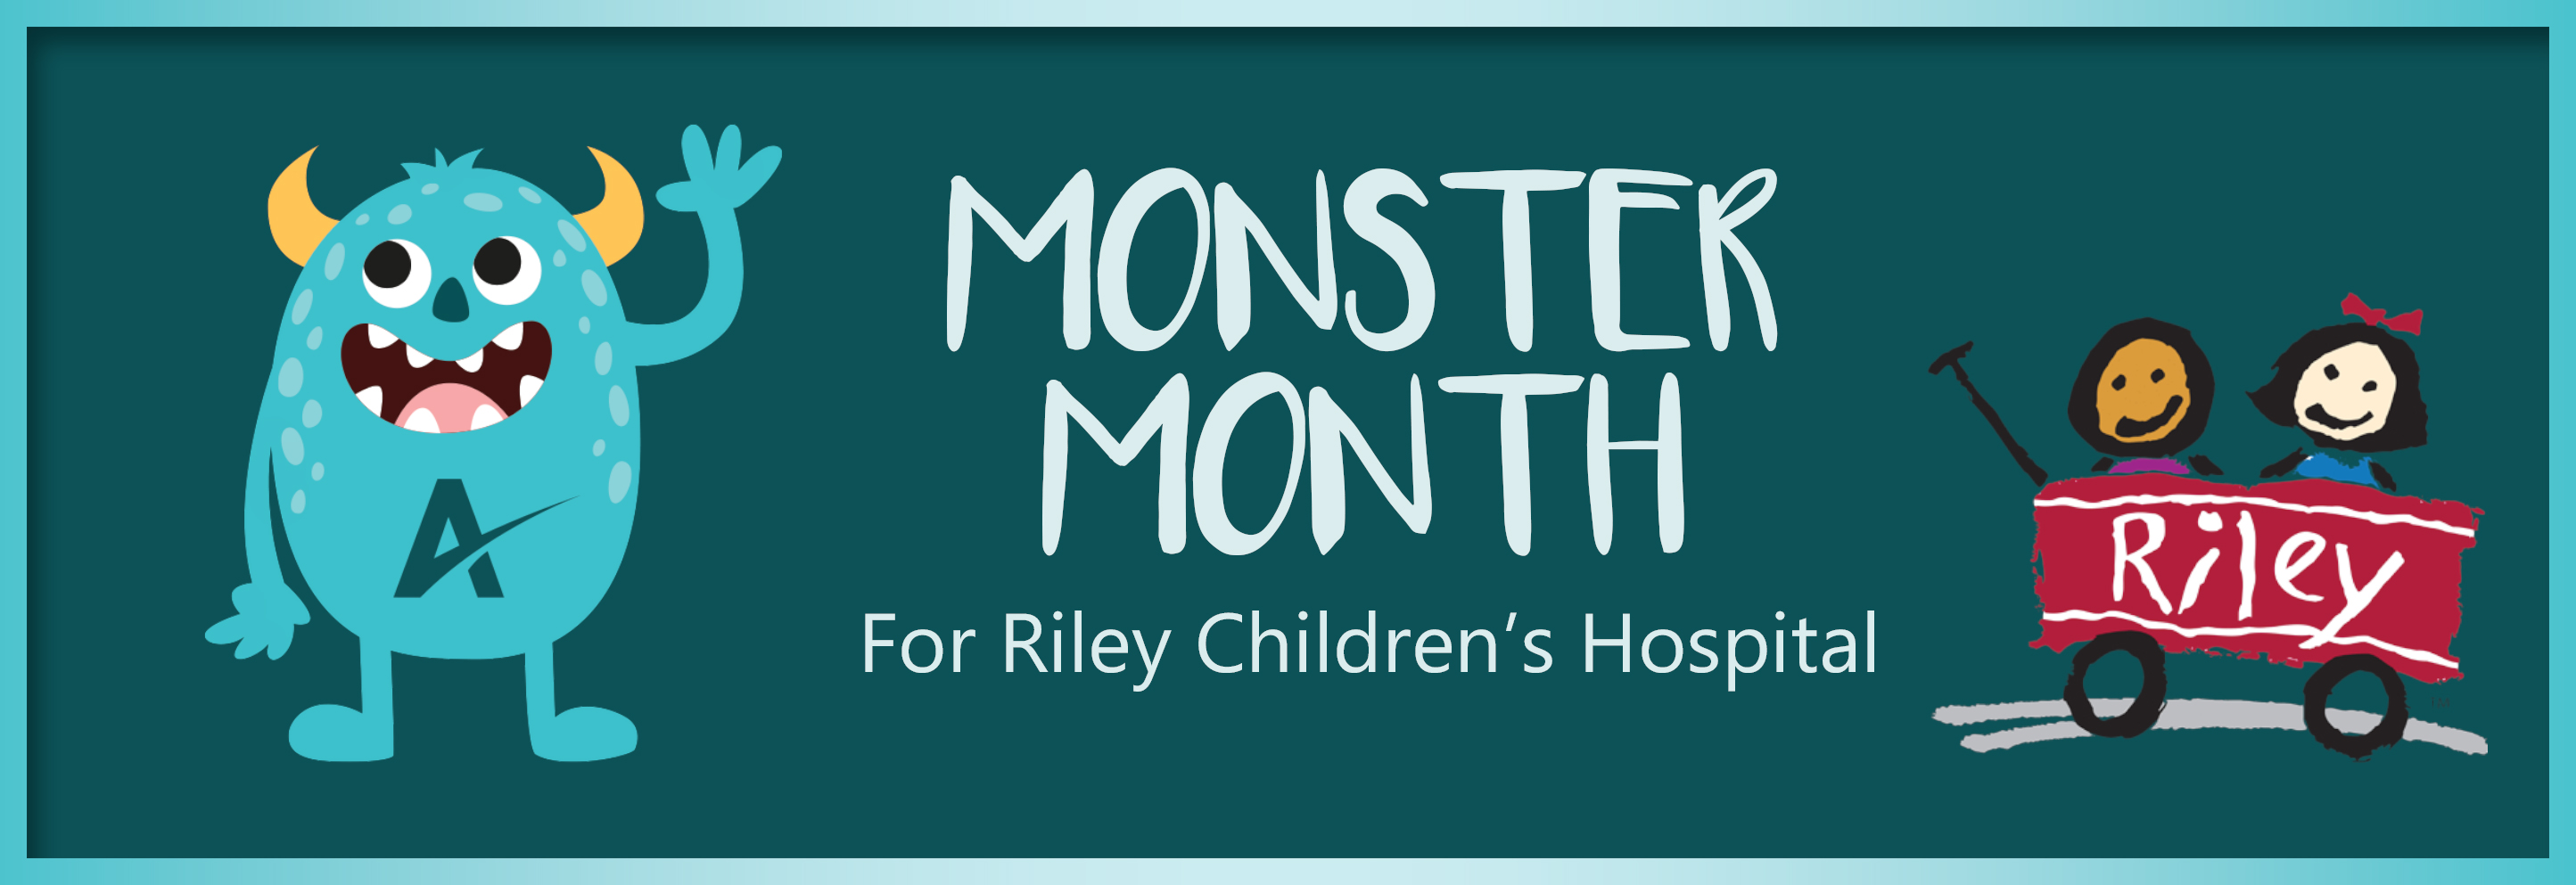 Monster Month for Riley Children's Hospital